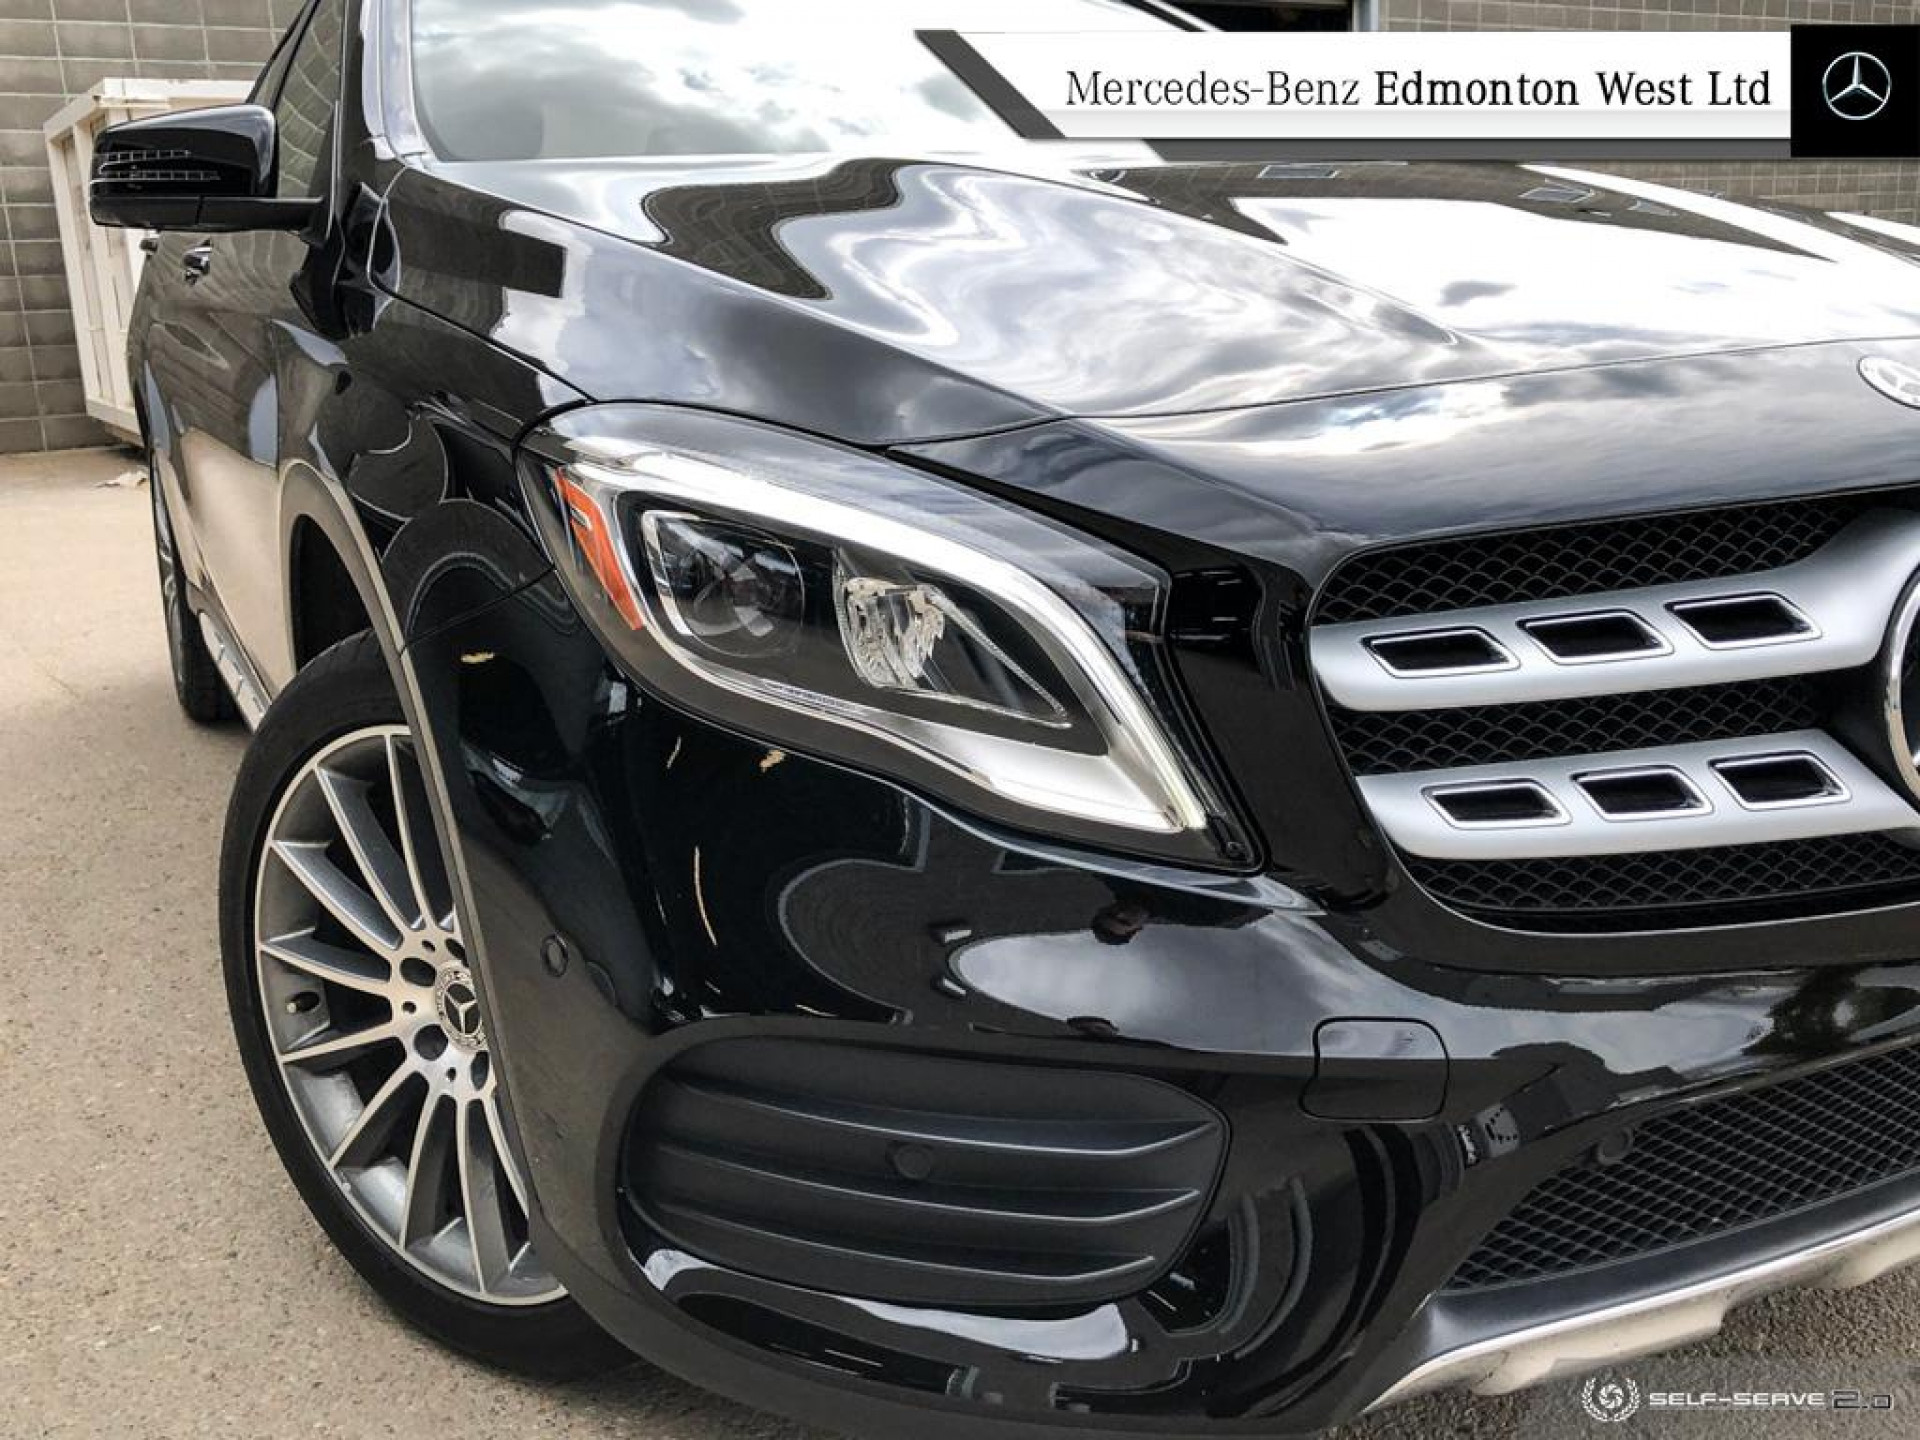 Pre-Owned 2020 Mercedes Benz GLA 250 4MATIC Demonstration Vehicle, Avantgarde Edition, Sport Package, 360 Camera